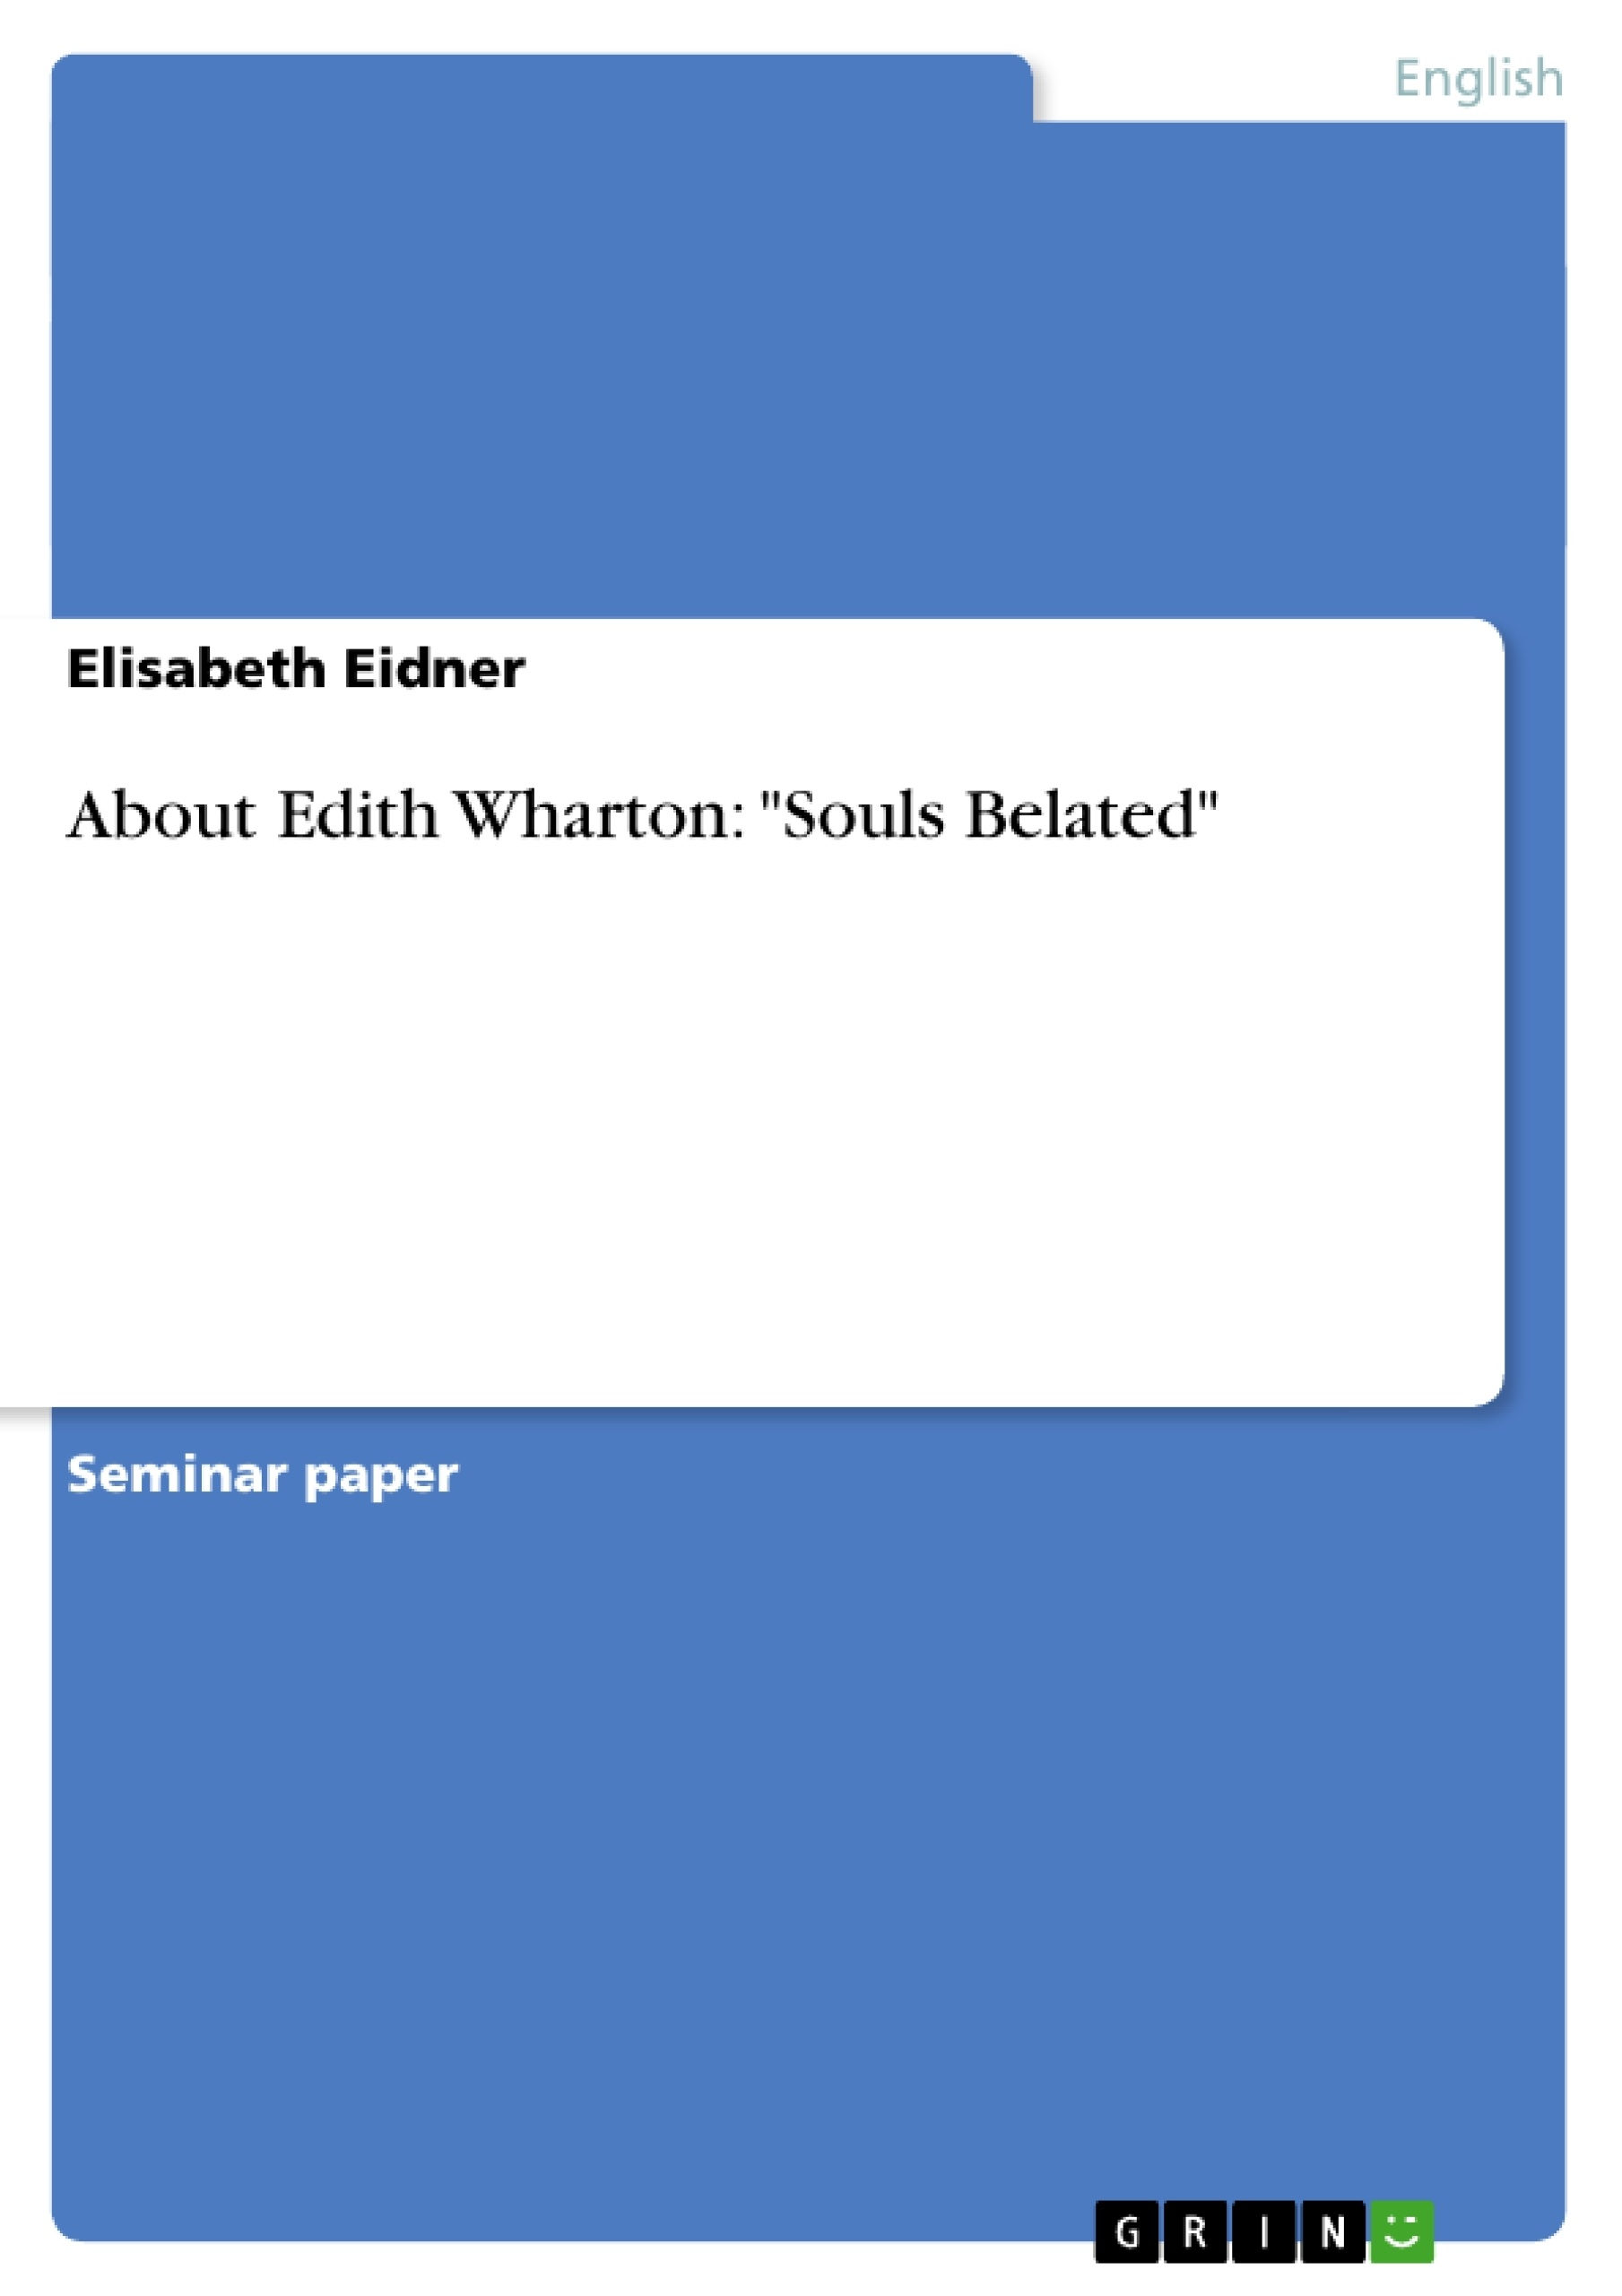 an analysis of the book souls belated by edith wharton 楽天koboで「about edith wharton: 'souls belated'」(elisabeth eidner)を読もう seminar paper from the year 2011 in the subject american studies - literature, grade: bestanden, university of leipzig (.